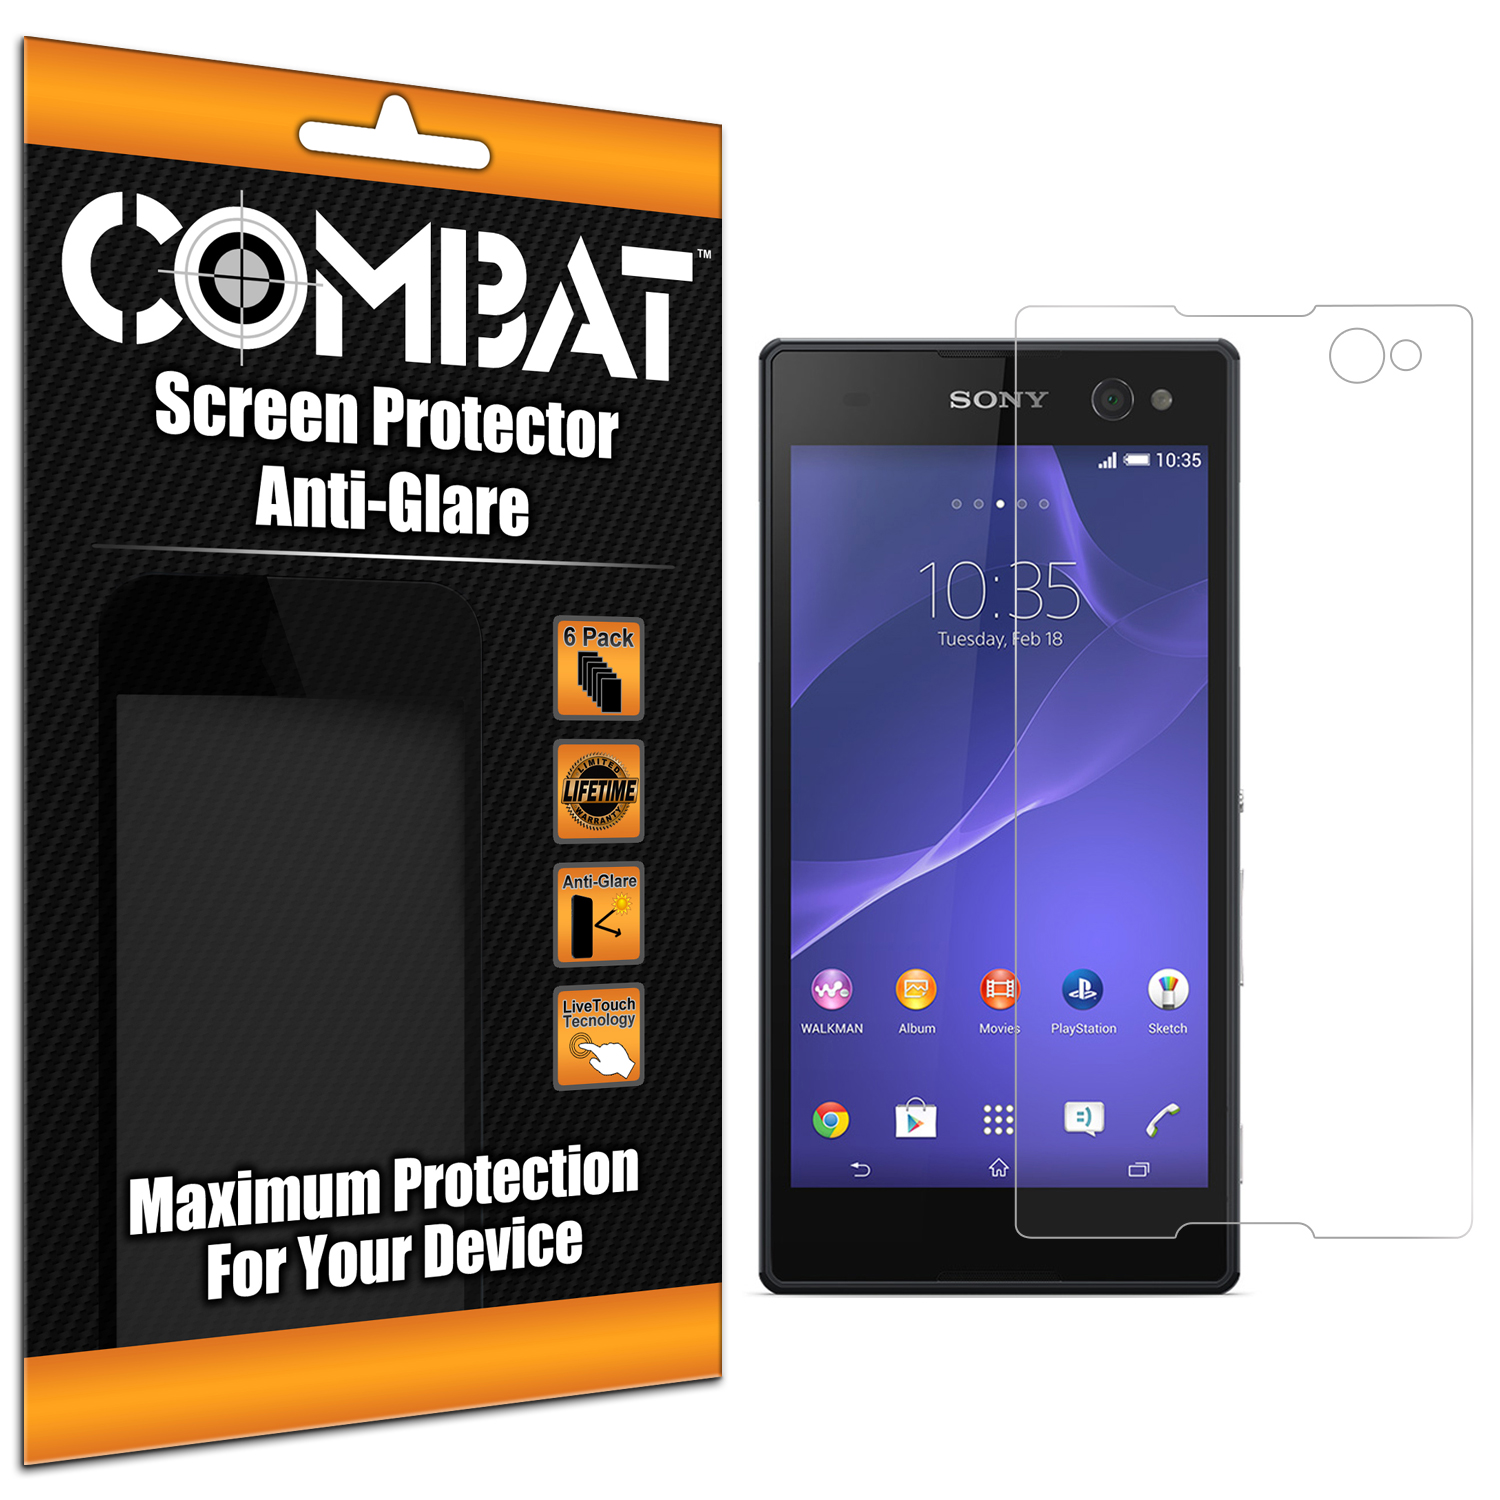 Sony Xperia C3 Combat 6 Pack Anti-Glare Matte Screen Protector